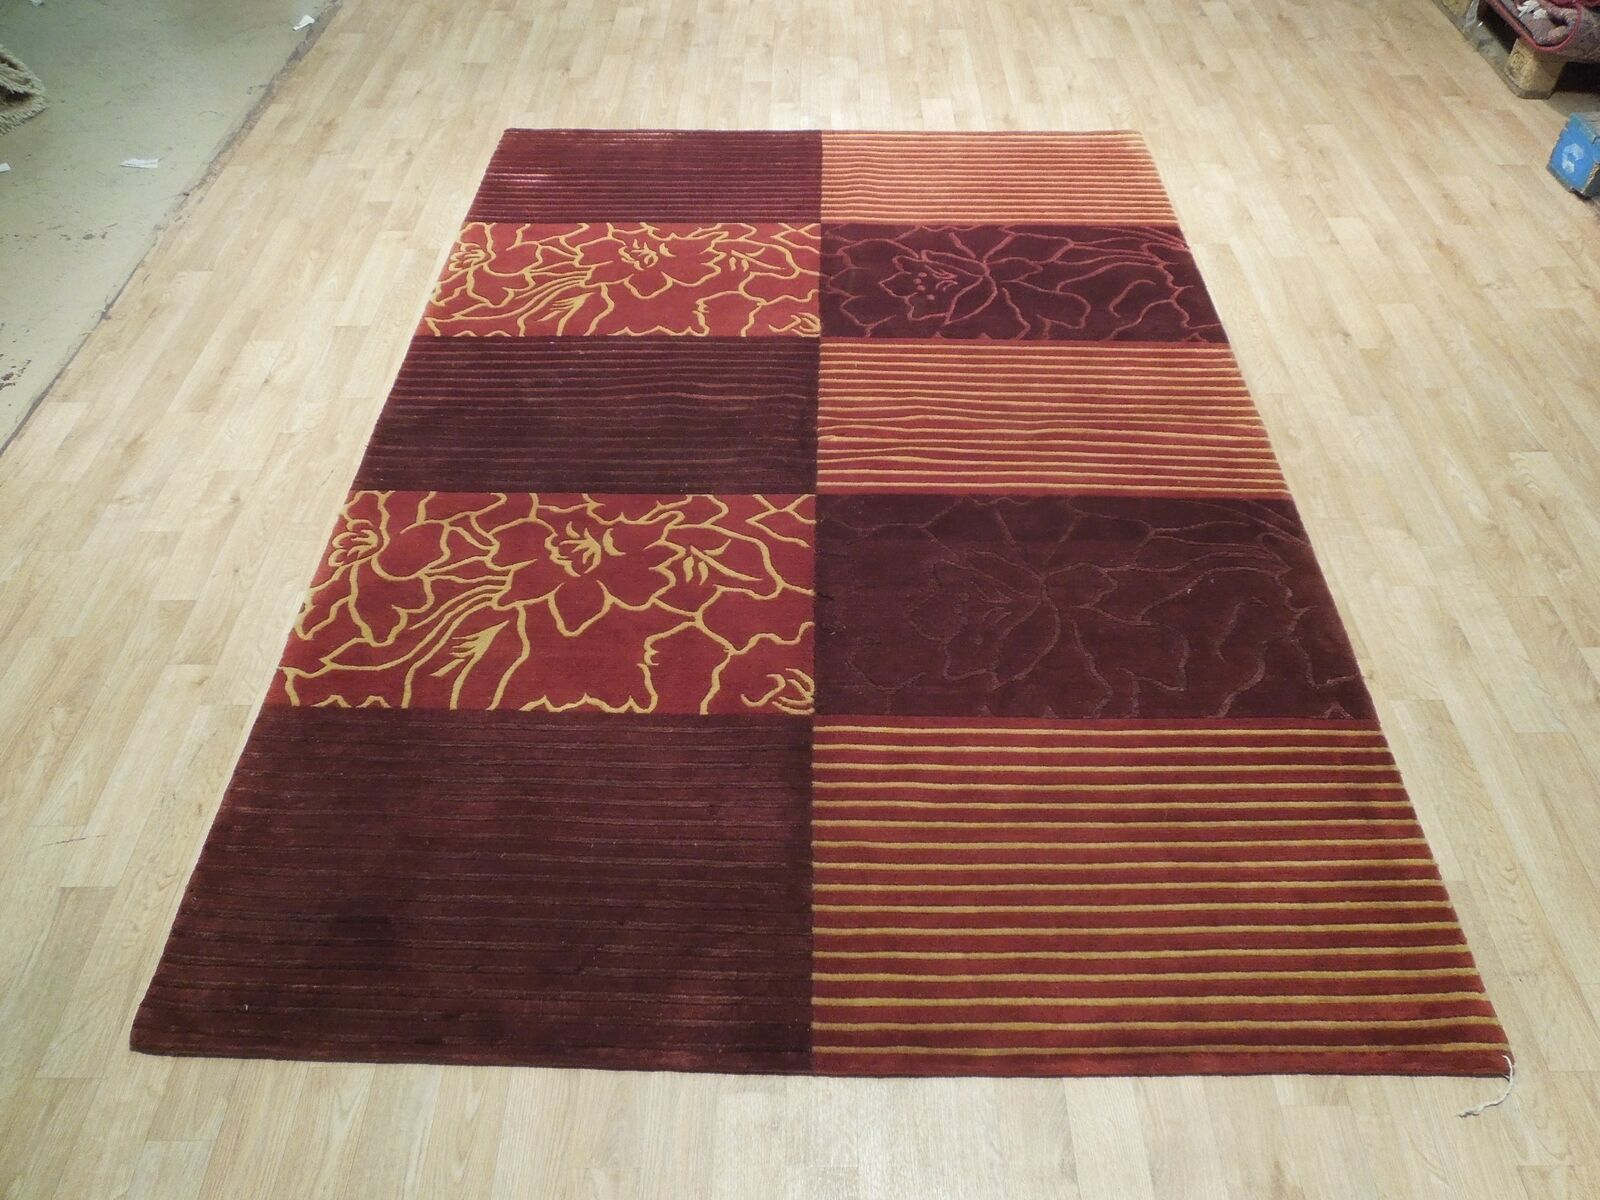 Abstract Shades of Red Gold stripes Handmade 6 x 8 Red Modern Wool & Silk Rug image 4